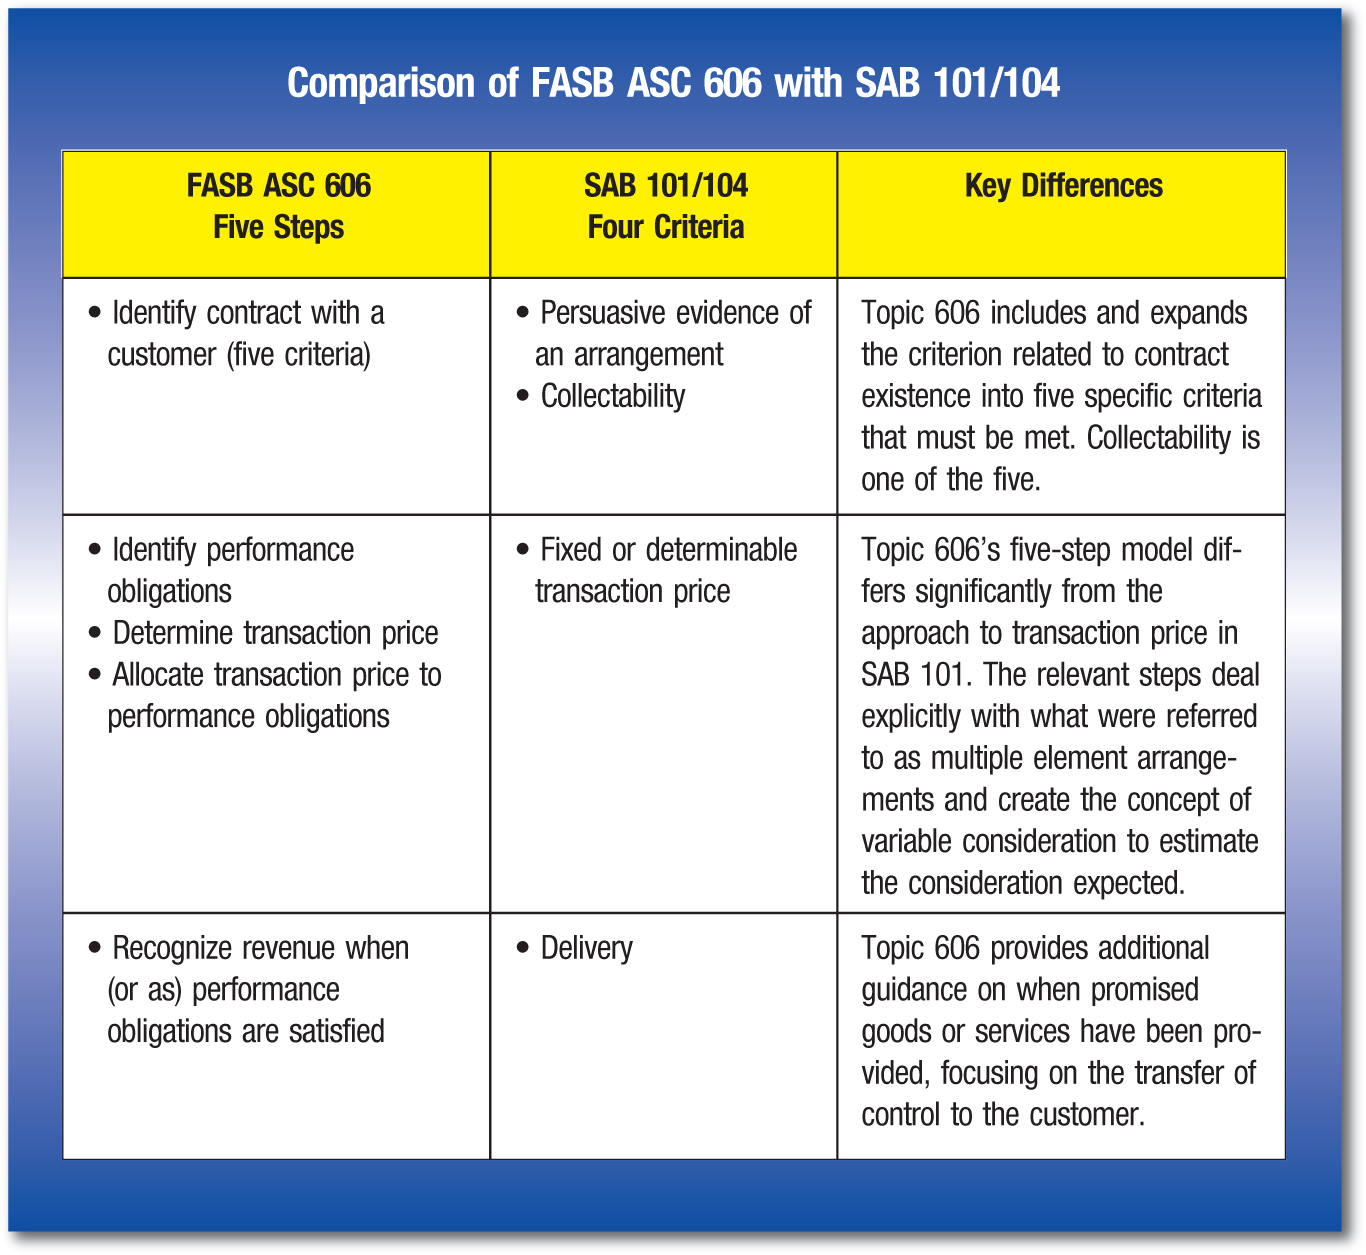 FASB ASC 606 Five Steps; SAB 101/104 Four Criteria; Key Differences • Identify contract with a customer (five criteria); • Persuasive evidence of an arrangement • Collectability; Topic 606 includes and expands the criterion related to contract existence into five specific criteria that must be met. Collectability is one of the five. • Identify performance obligations • Determine transaction price • Allocate transaction price to performance obligations; • Fixed or determinable transaction price; Topic 606's five-step model differs significantly from the approach to transaction price in SAB 101. The relevant steps deal explicitly with what were referred to as multiple element arrangements and create the concept of variable consideration to estimate the consideration expected. • Recognize revenue when (or as) performance obligations are satisfied; • Delivery; Topic 606 provides additional guidance on when promised goods or services have been provided, focusing on the transfer of control to the customer.